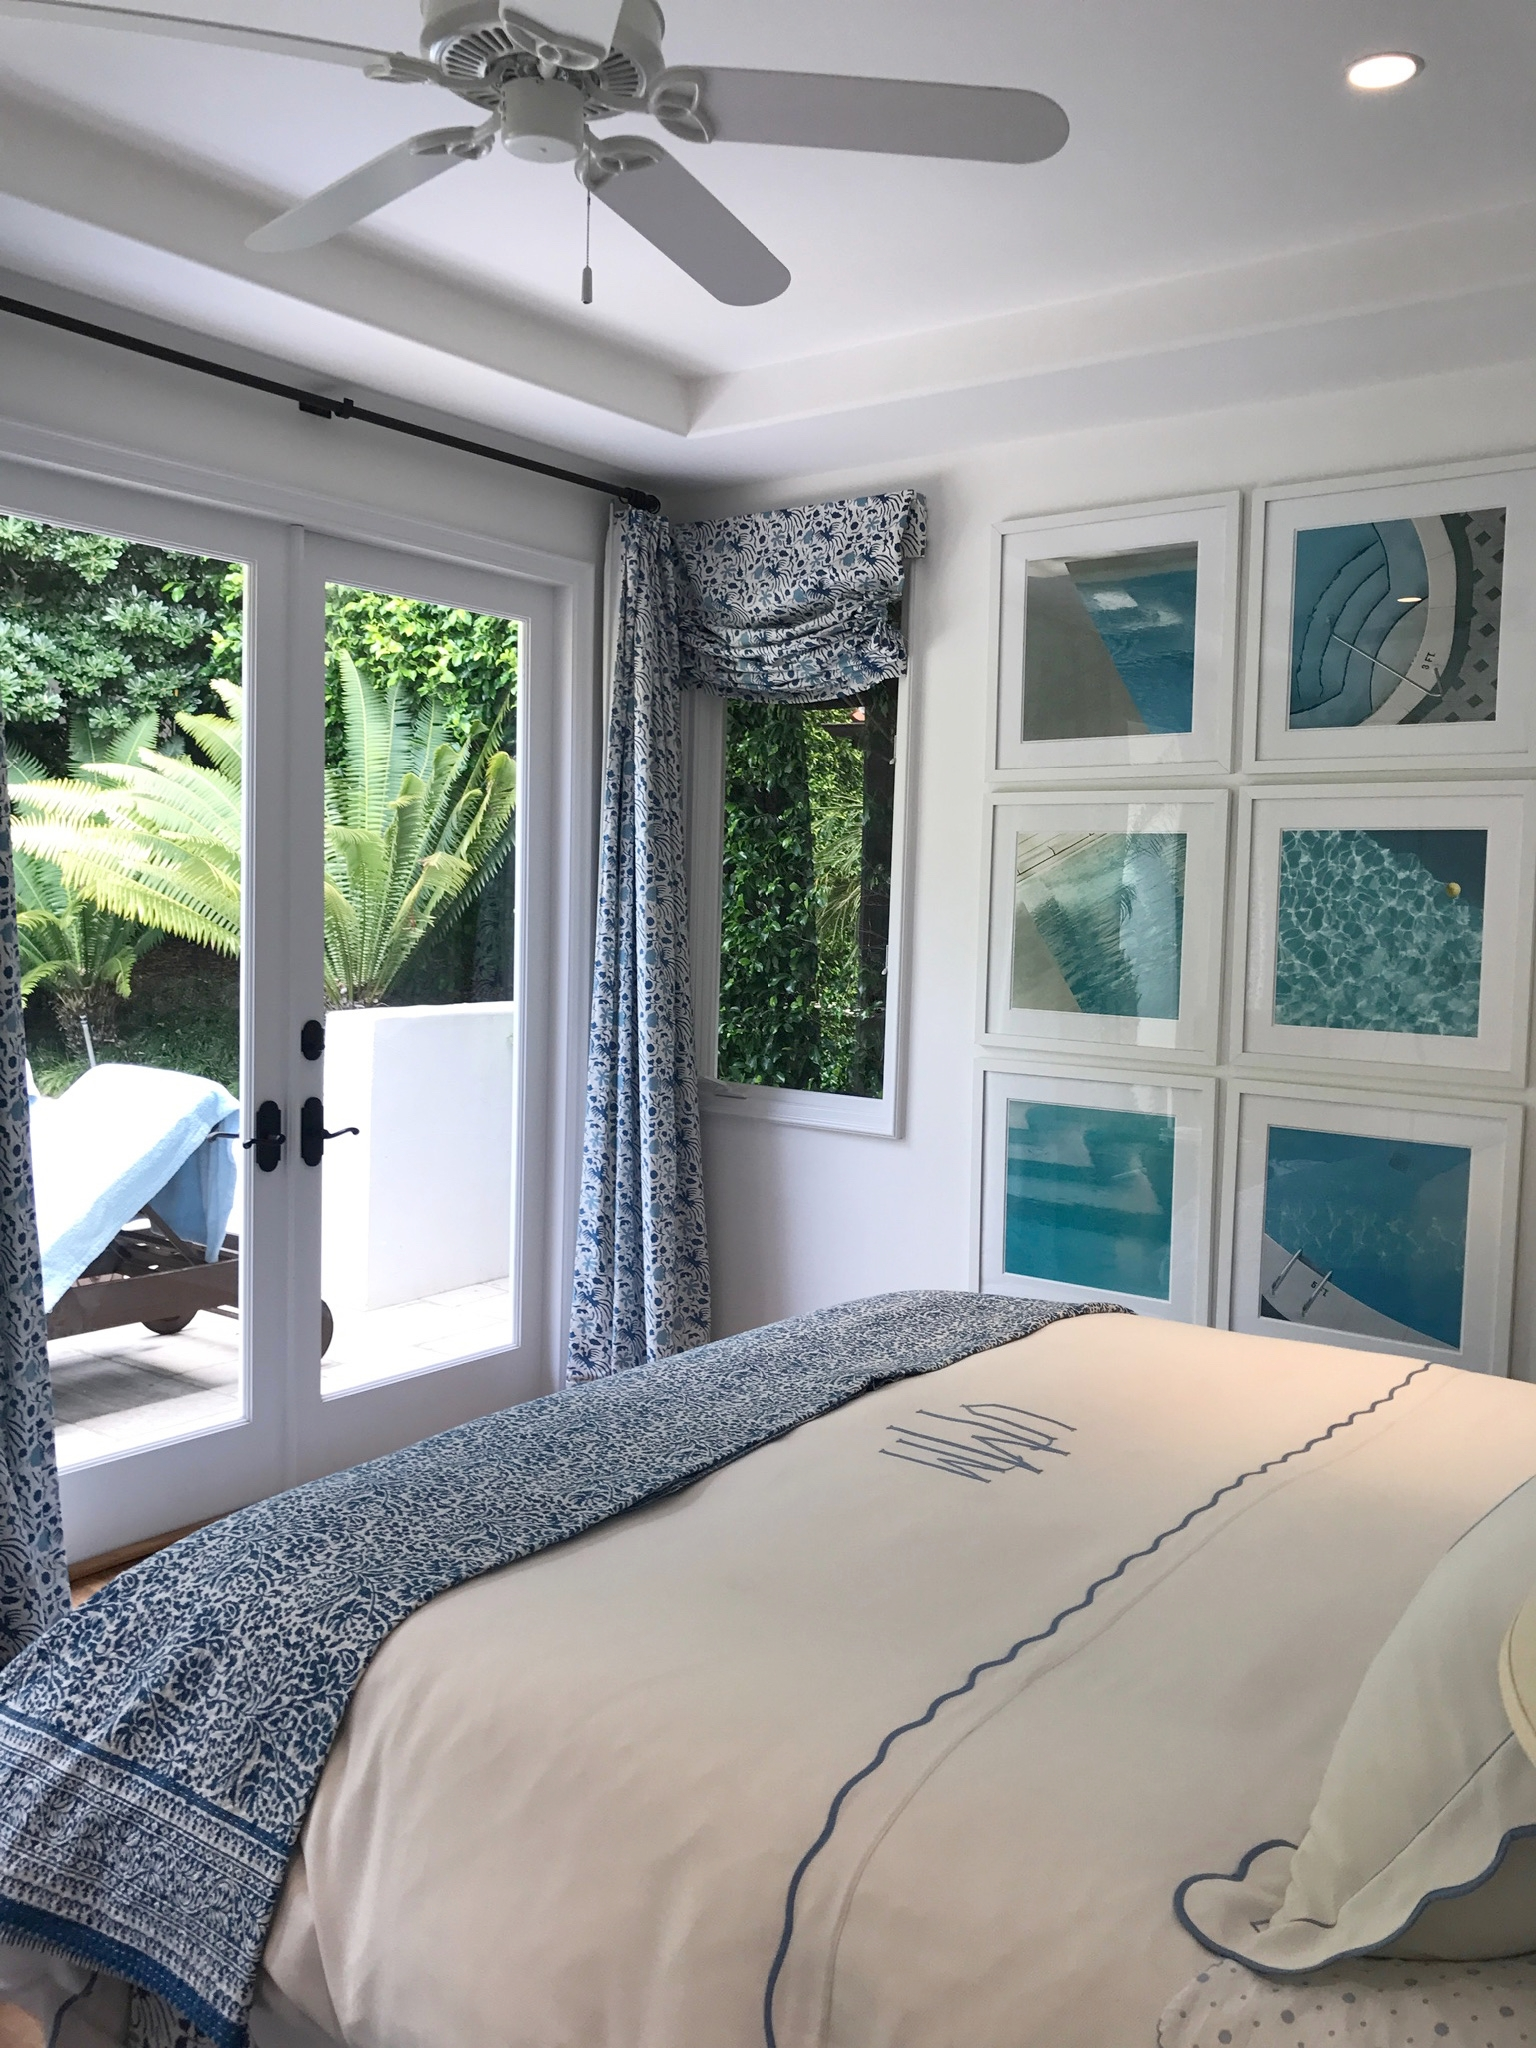 Guest room in Laguna beach with French doors and pool photos.